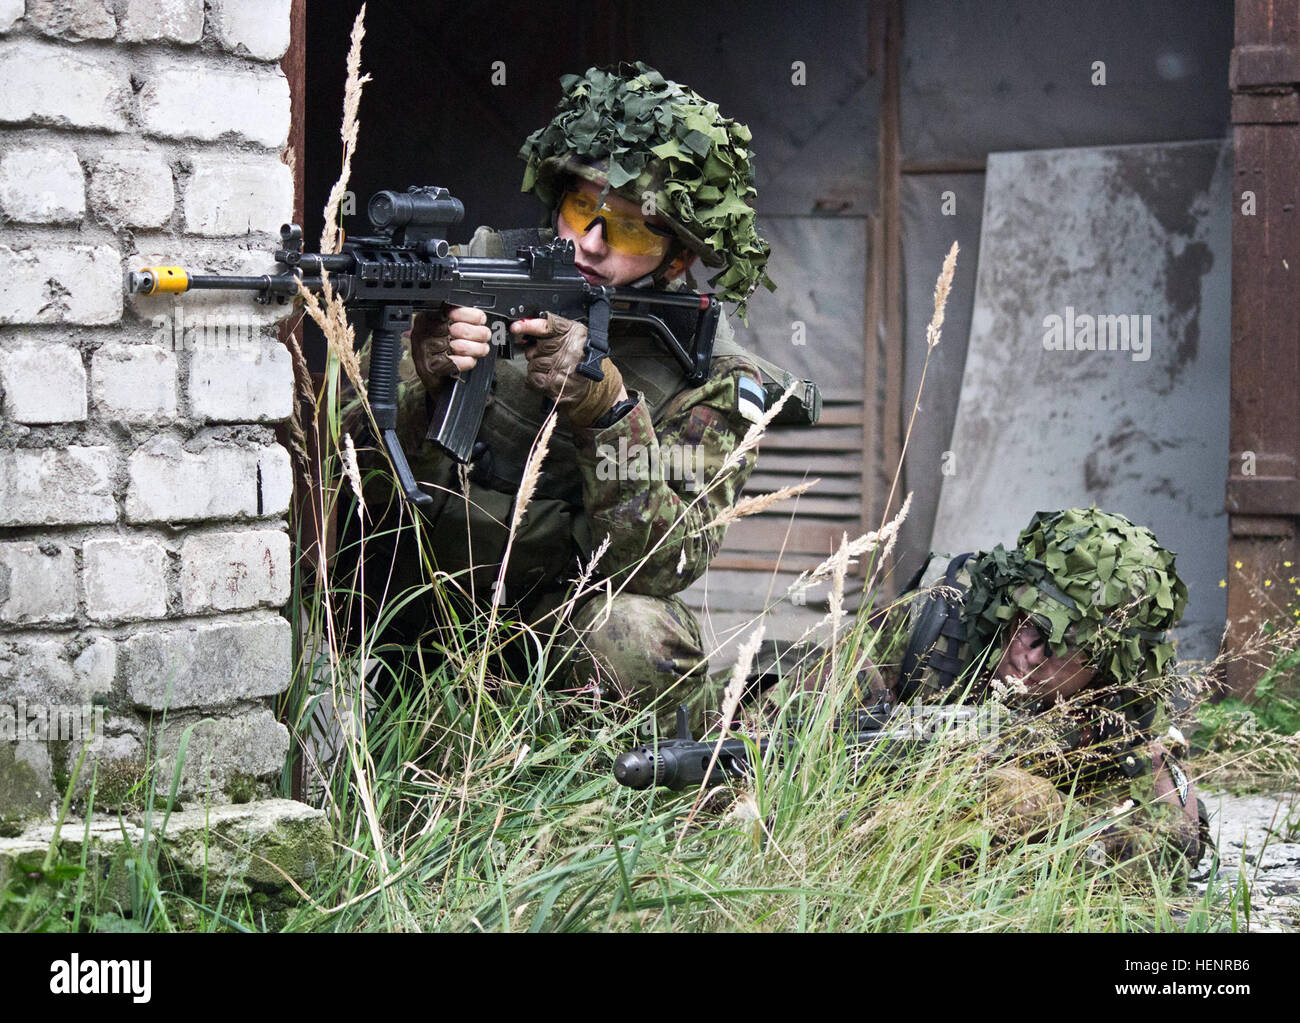 Estonian Defense Forces soldiers from Company C, Single Scouts Infantry Battalion provide covering fire during a Stock Photo